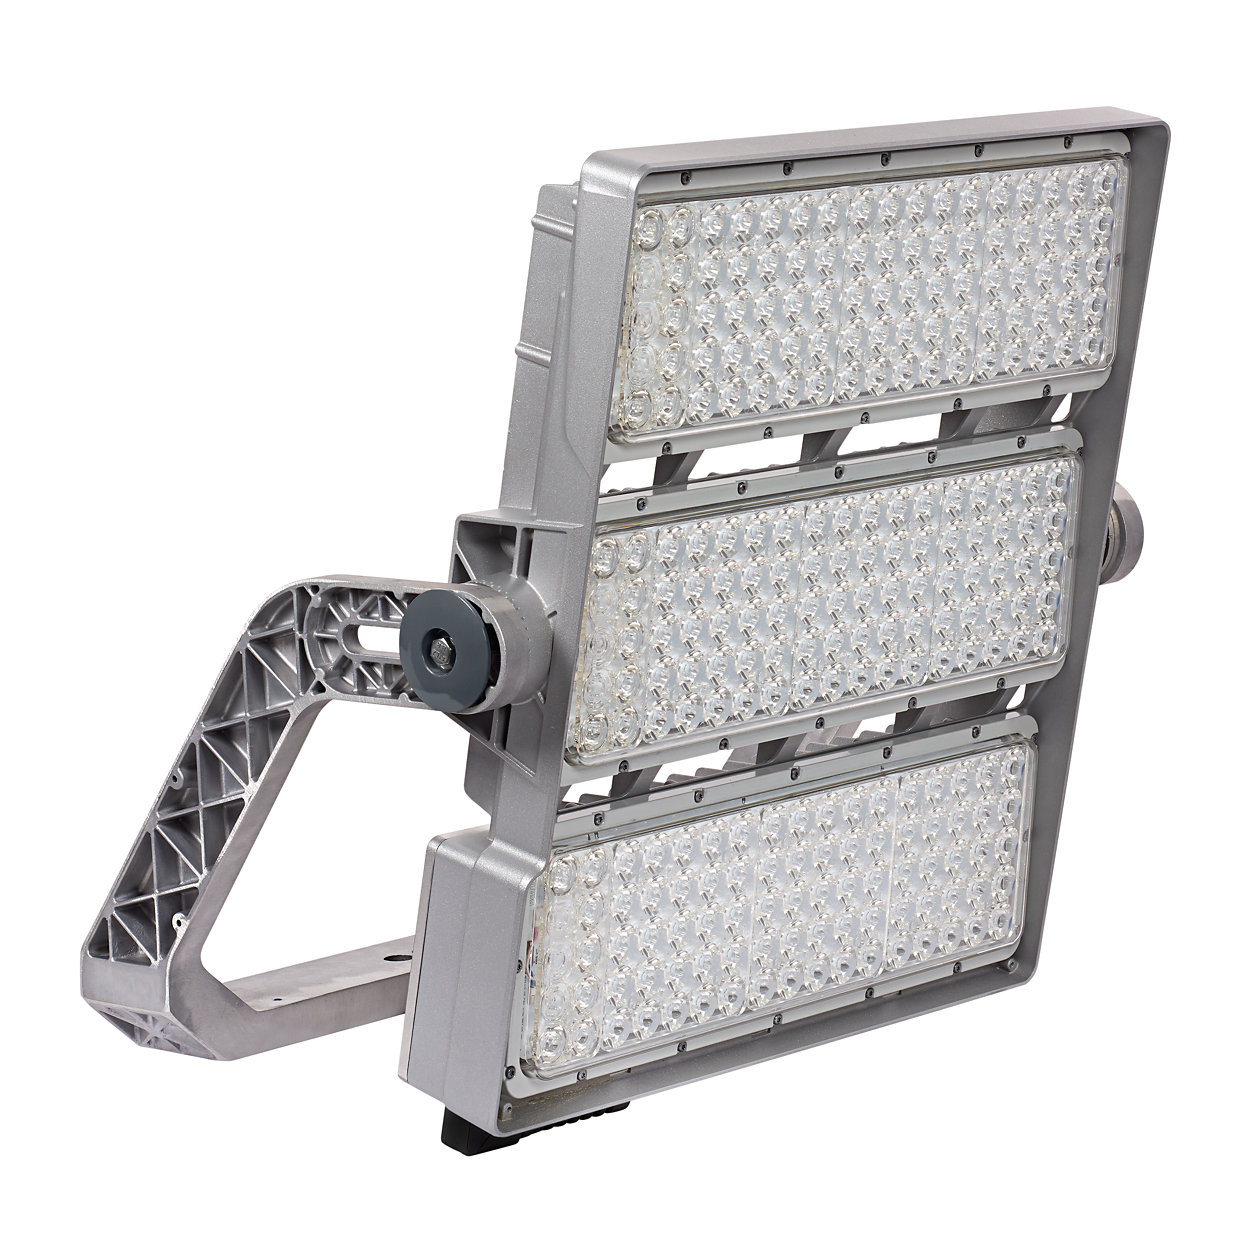 Smart area and recreational sports lighting